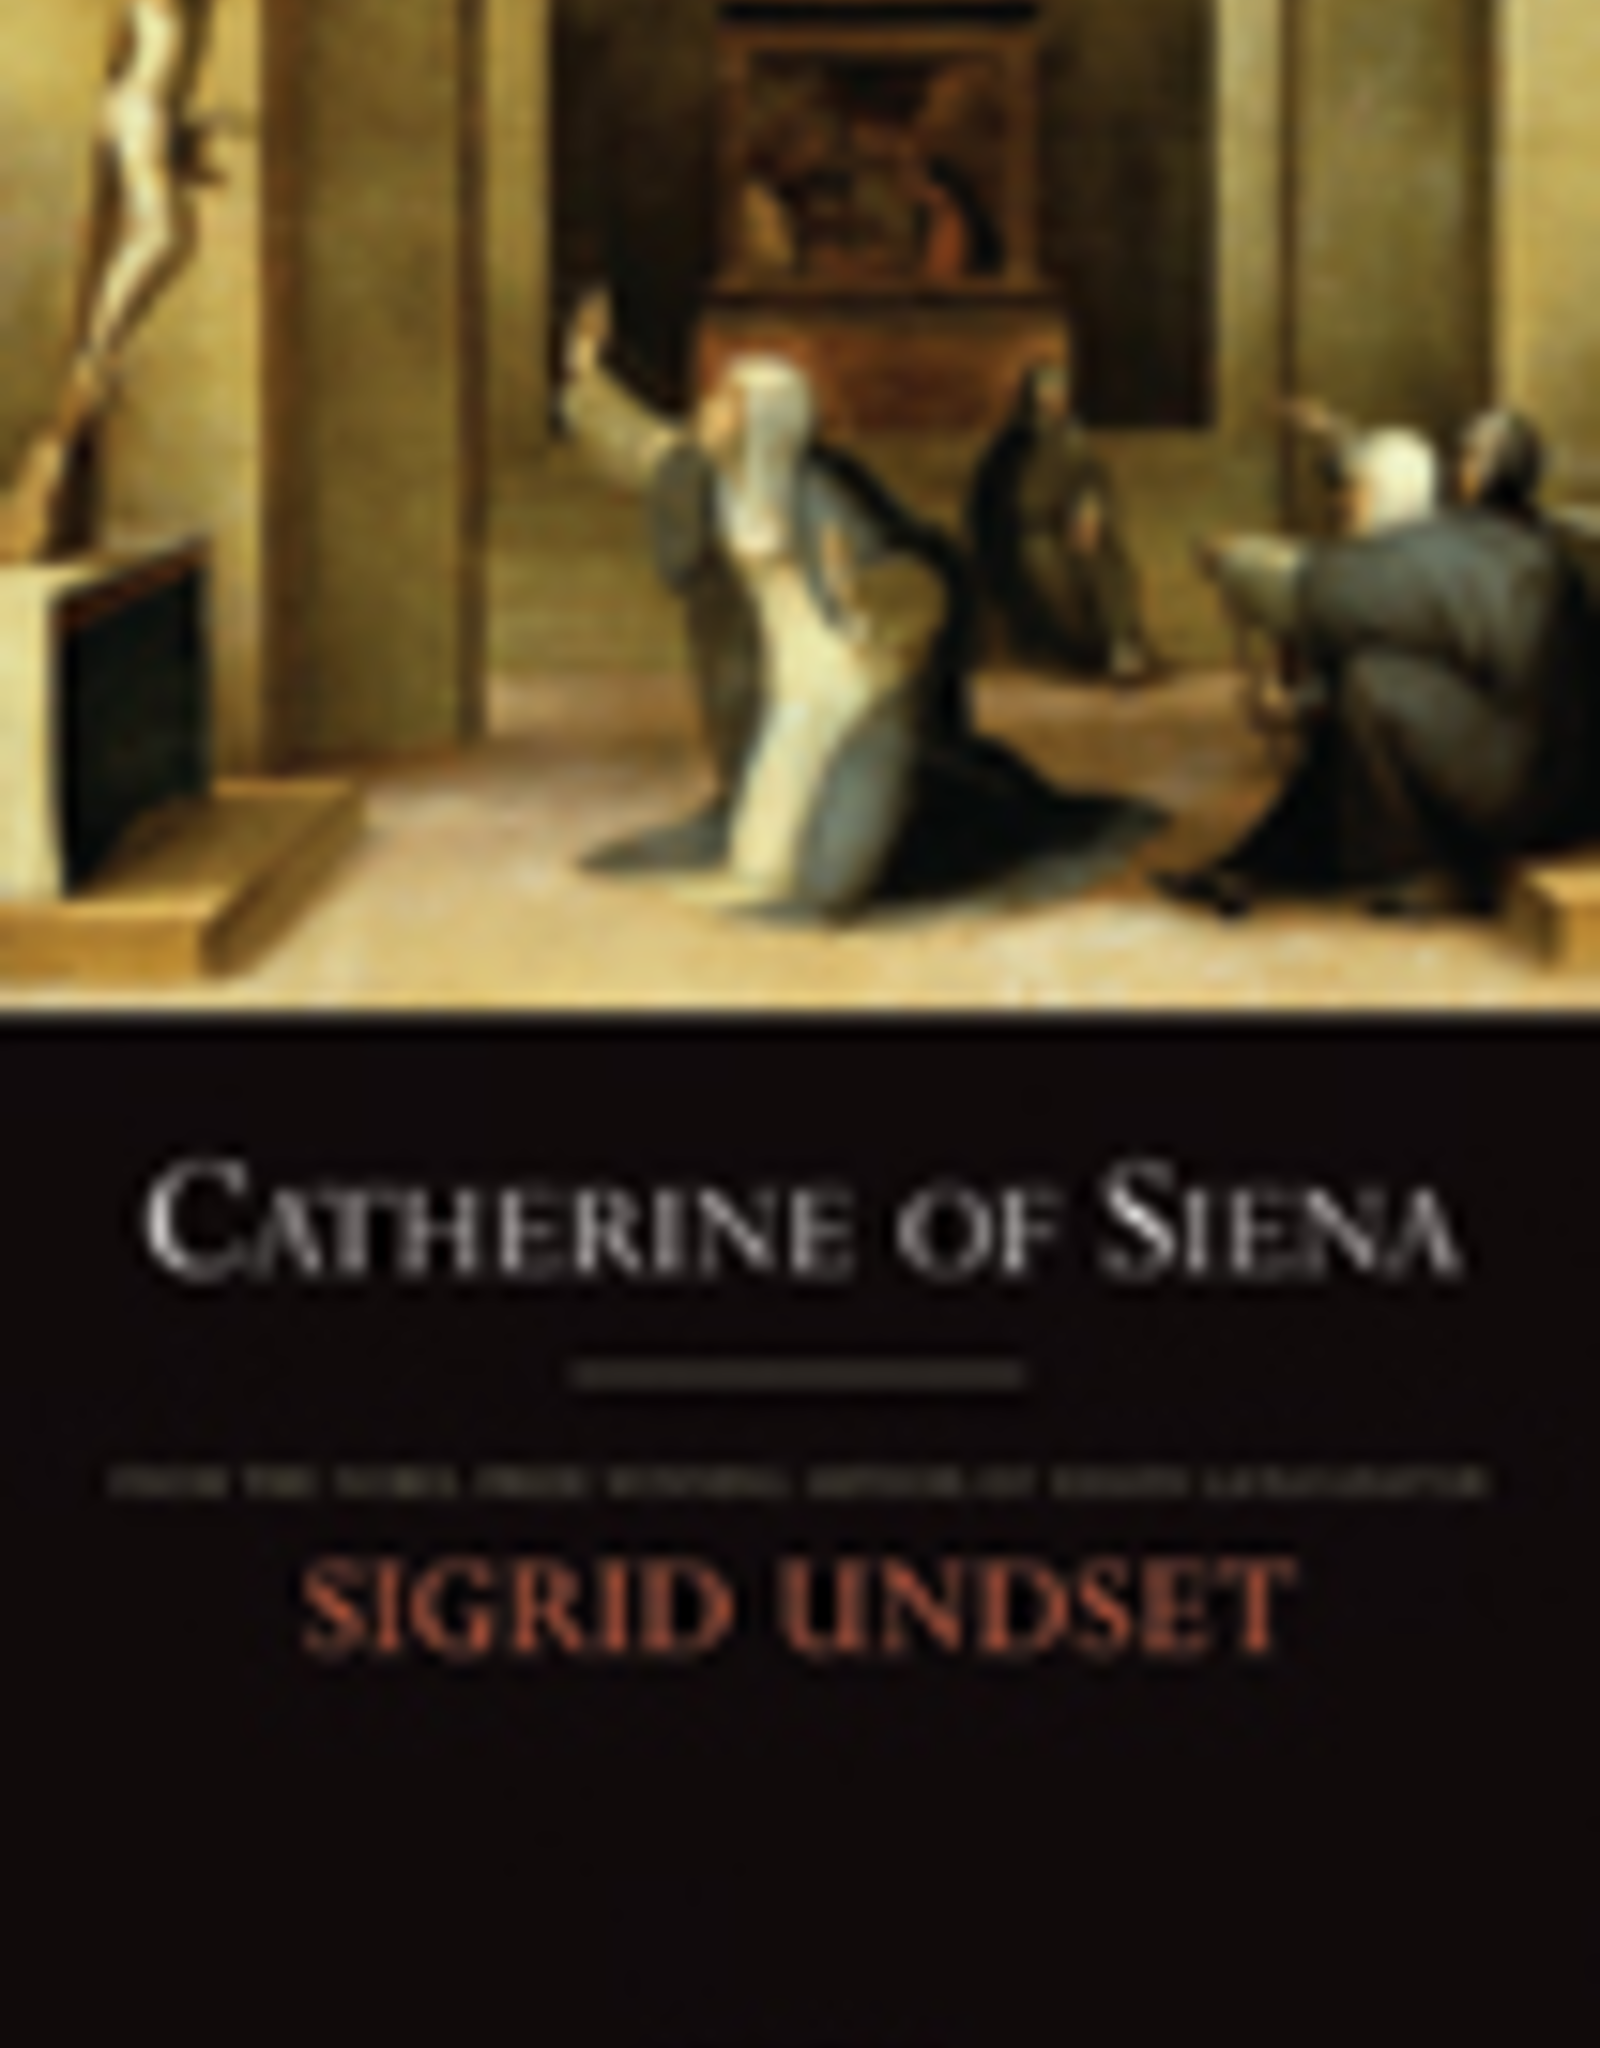 Ignatius Press Catherine of Siena, by Sigrid Undset (paperback)